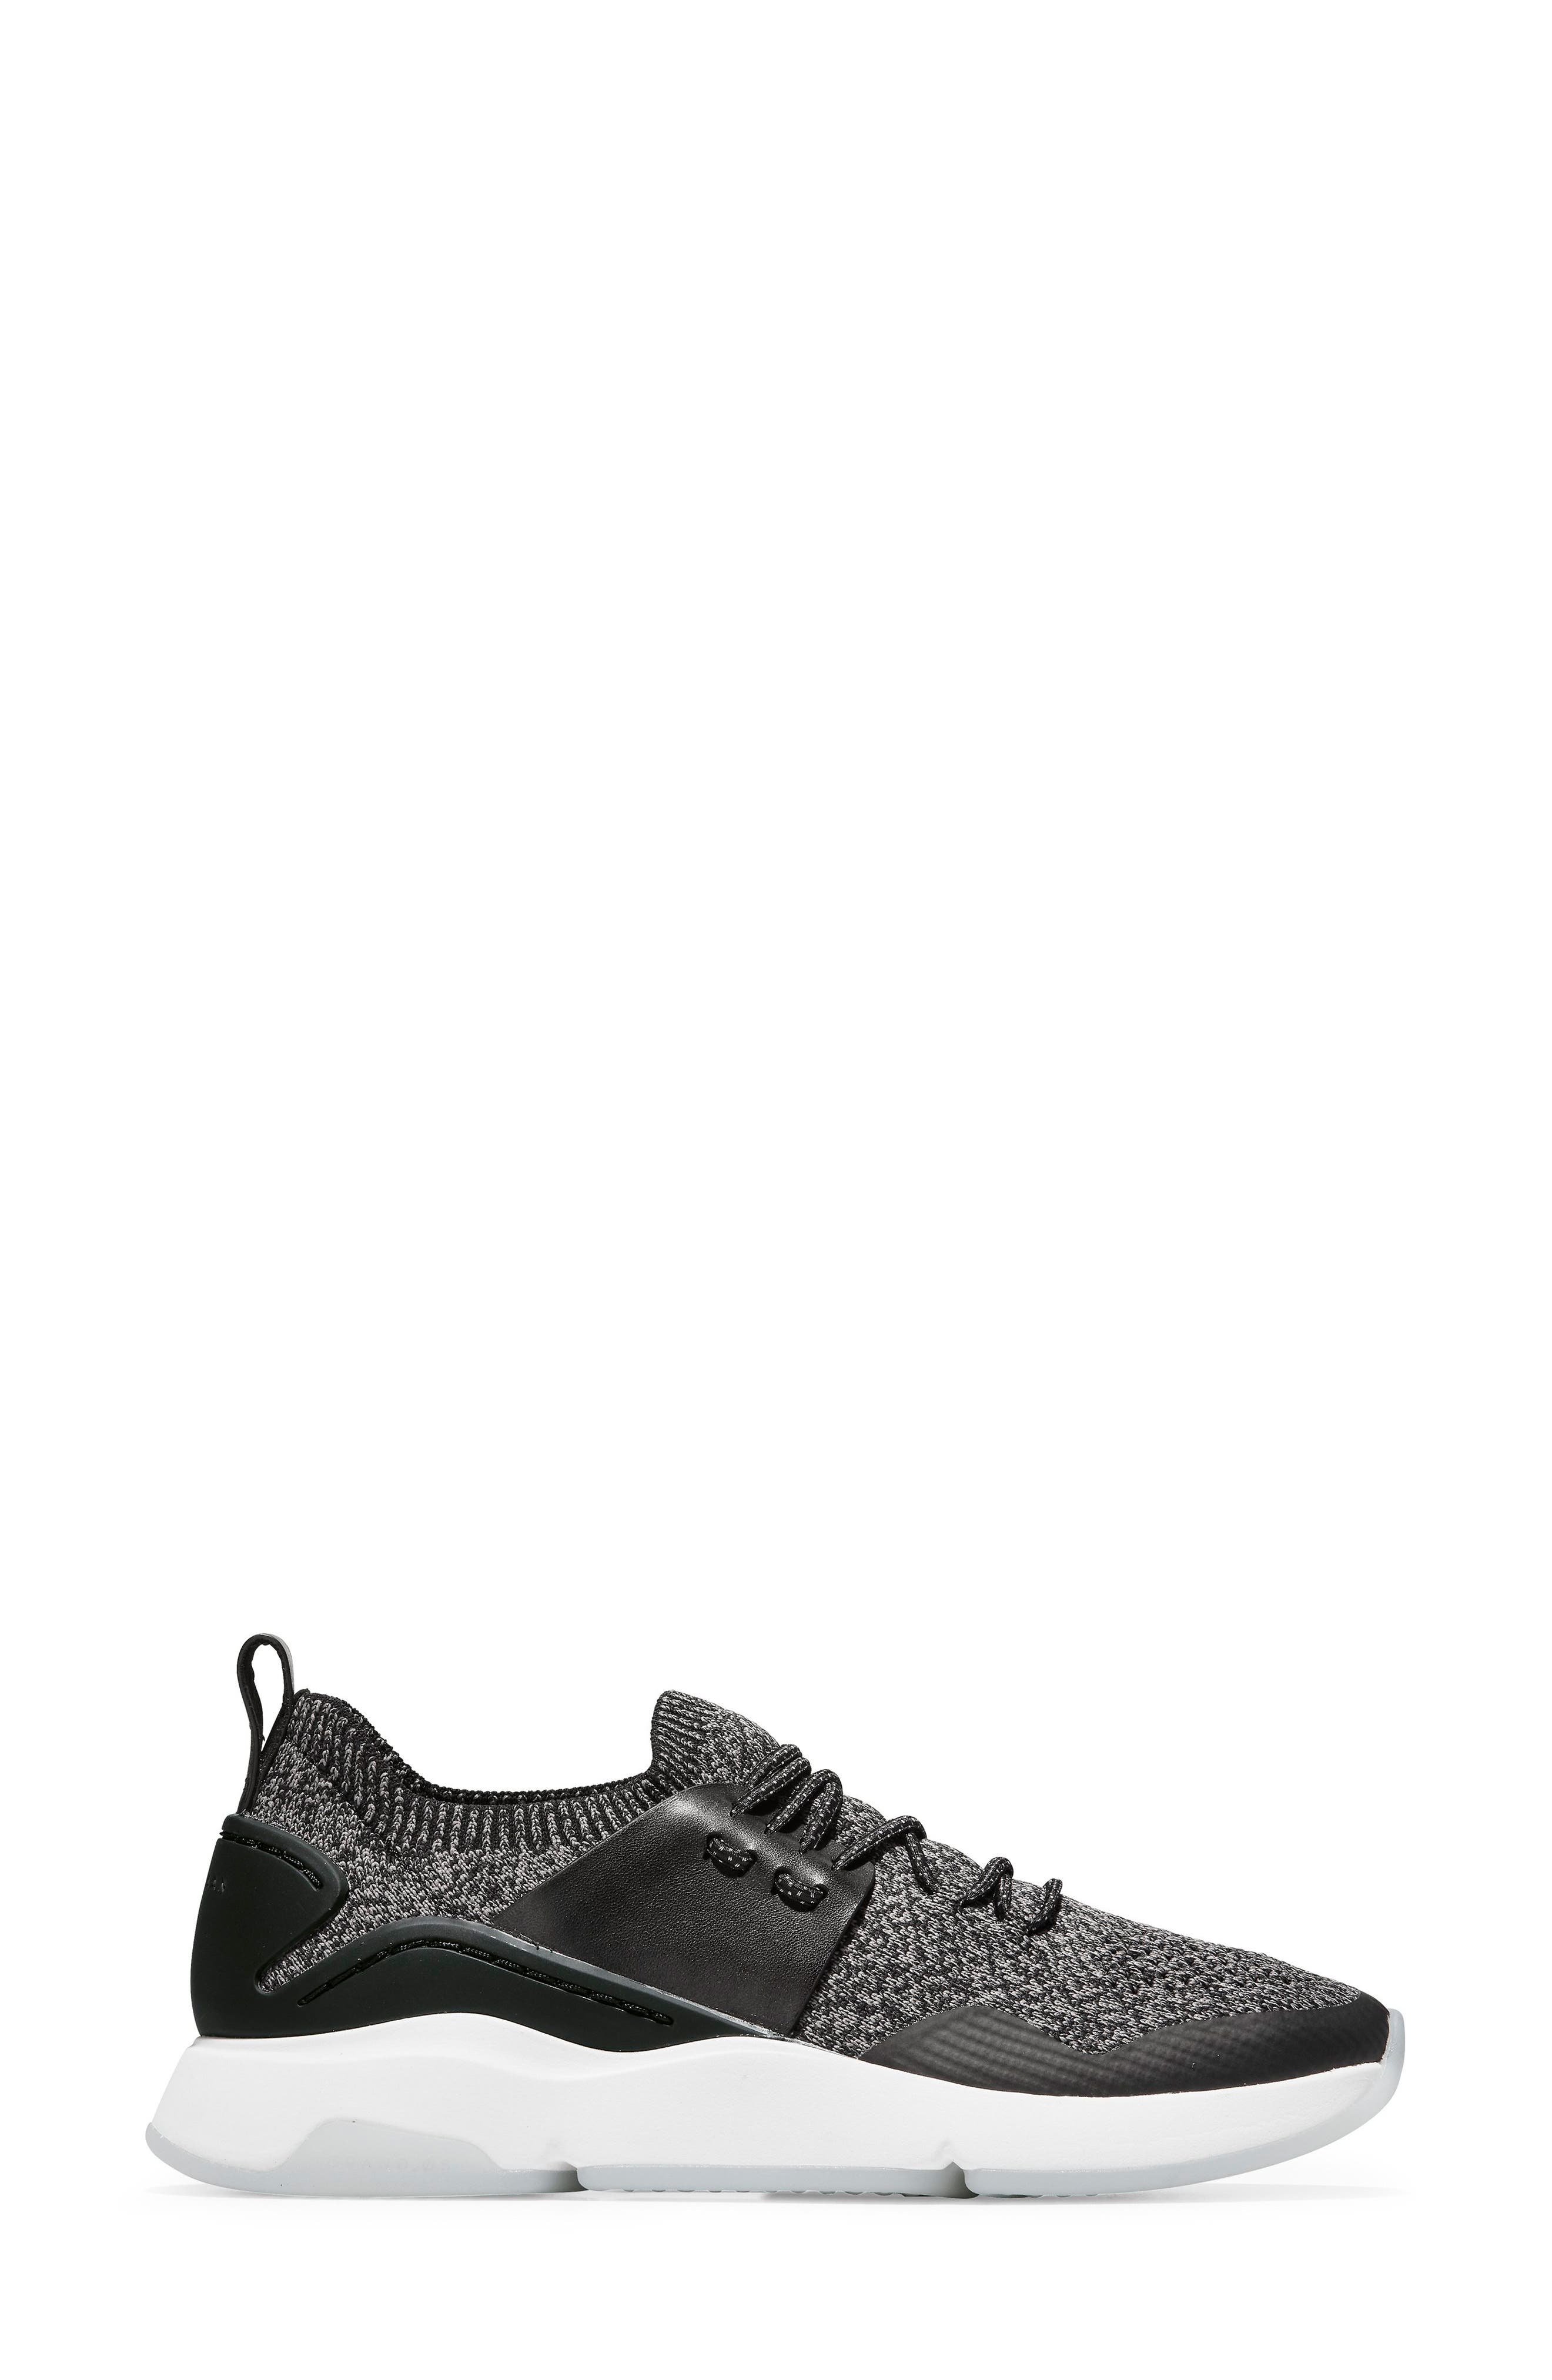 COLE HAAN, ZeroGrand All Day Trainer Sneaker, Alternate thumbnail 3, color, BLACK LEATHER